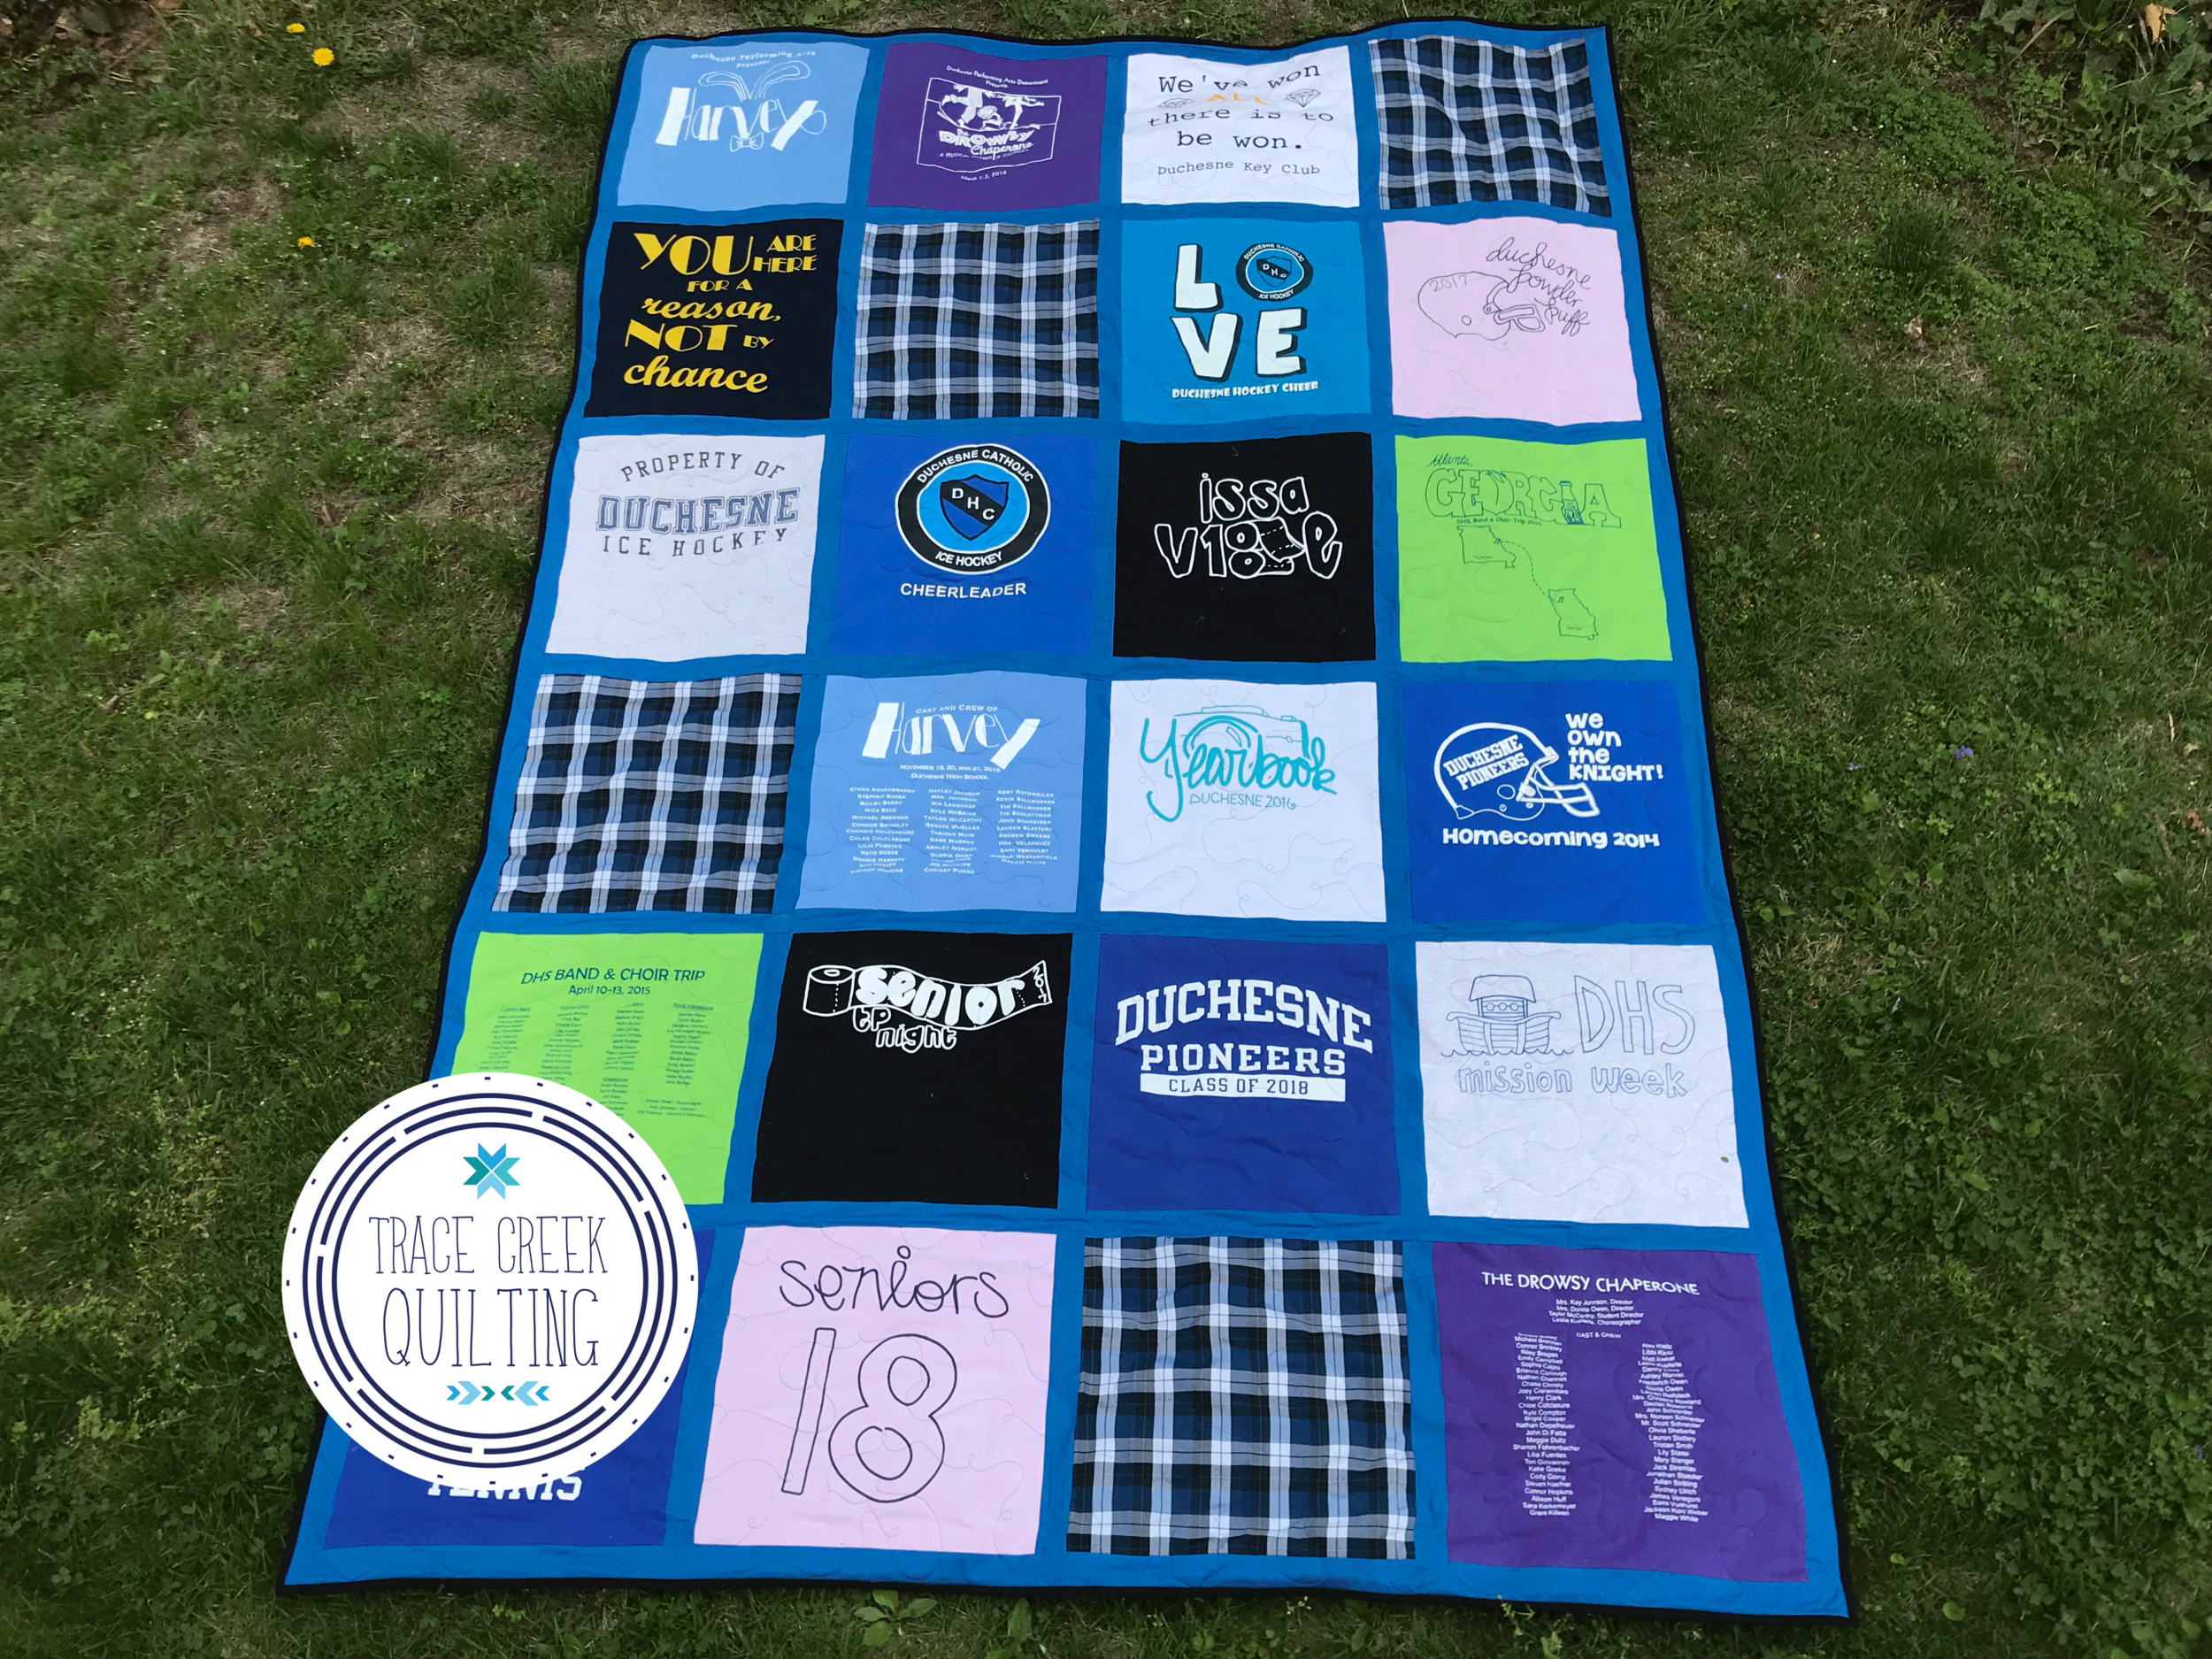 TShirt-Quilt-Trace-Creek-Quilting-031.png